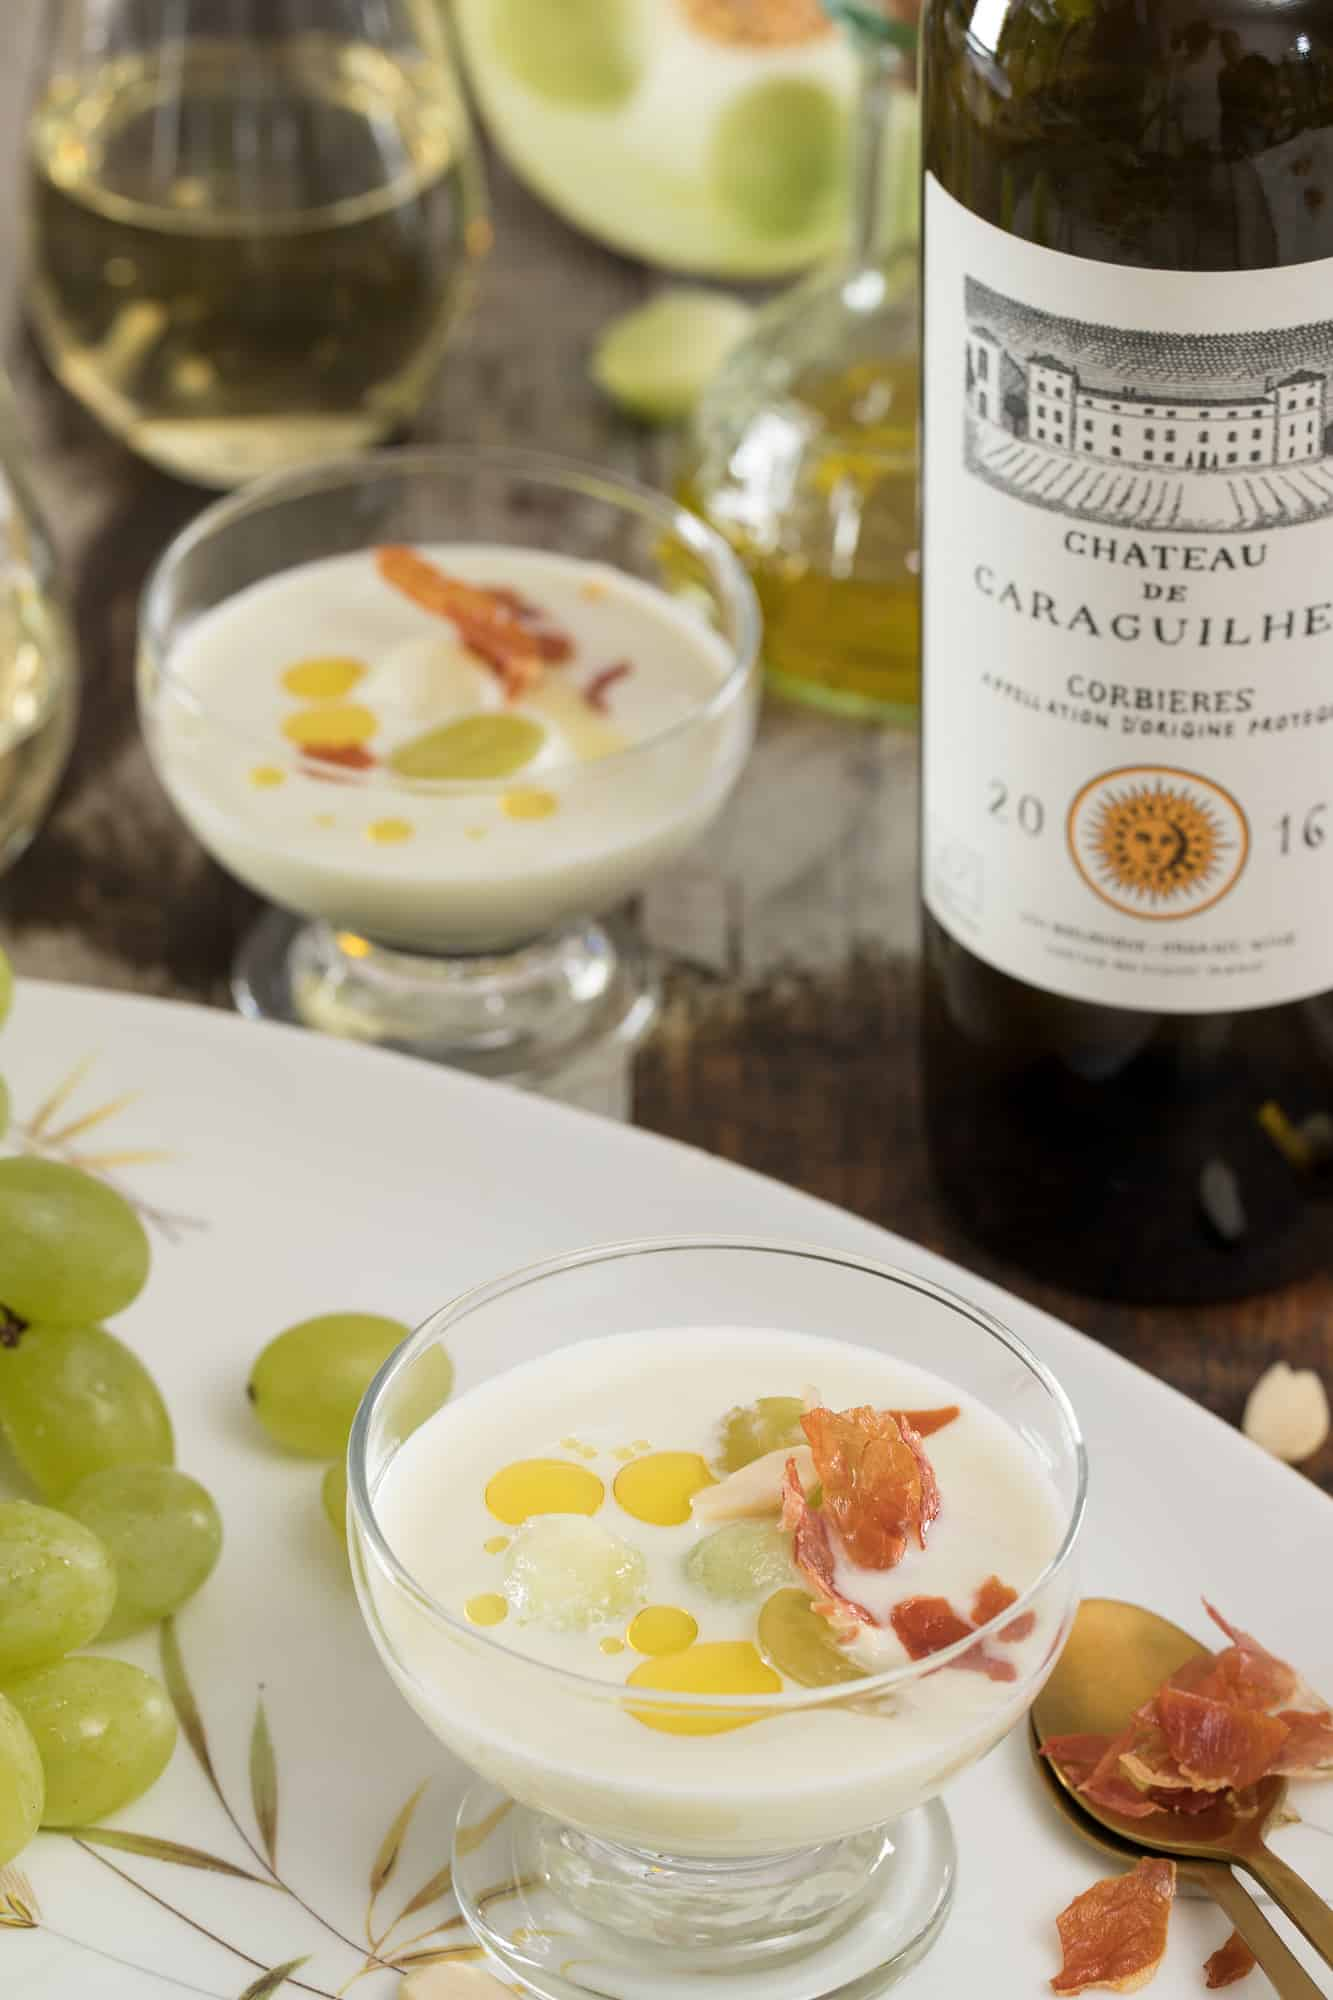 Witte Gazpacho met chateau caraguilhes by the grape